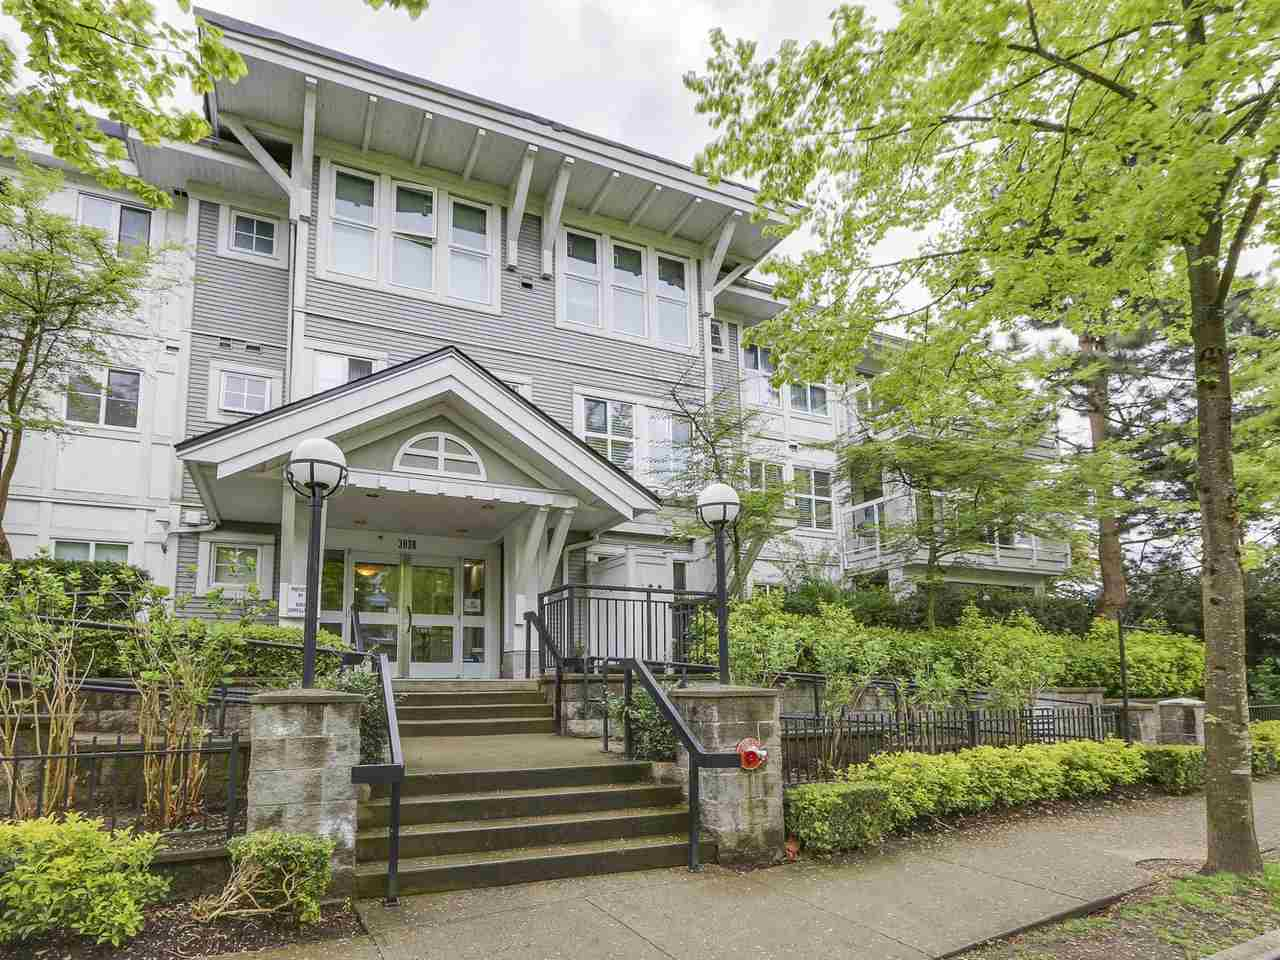 "Photo 17: 217 3038 E KENT SOUTH Avenue in Vancouver: Fraserview VE Condo for sale in ""SOUTH HAMPTON"" (Vancouver East)  : MLS® # R2164192"